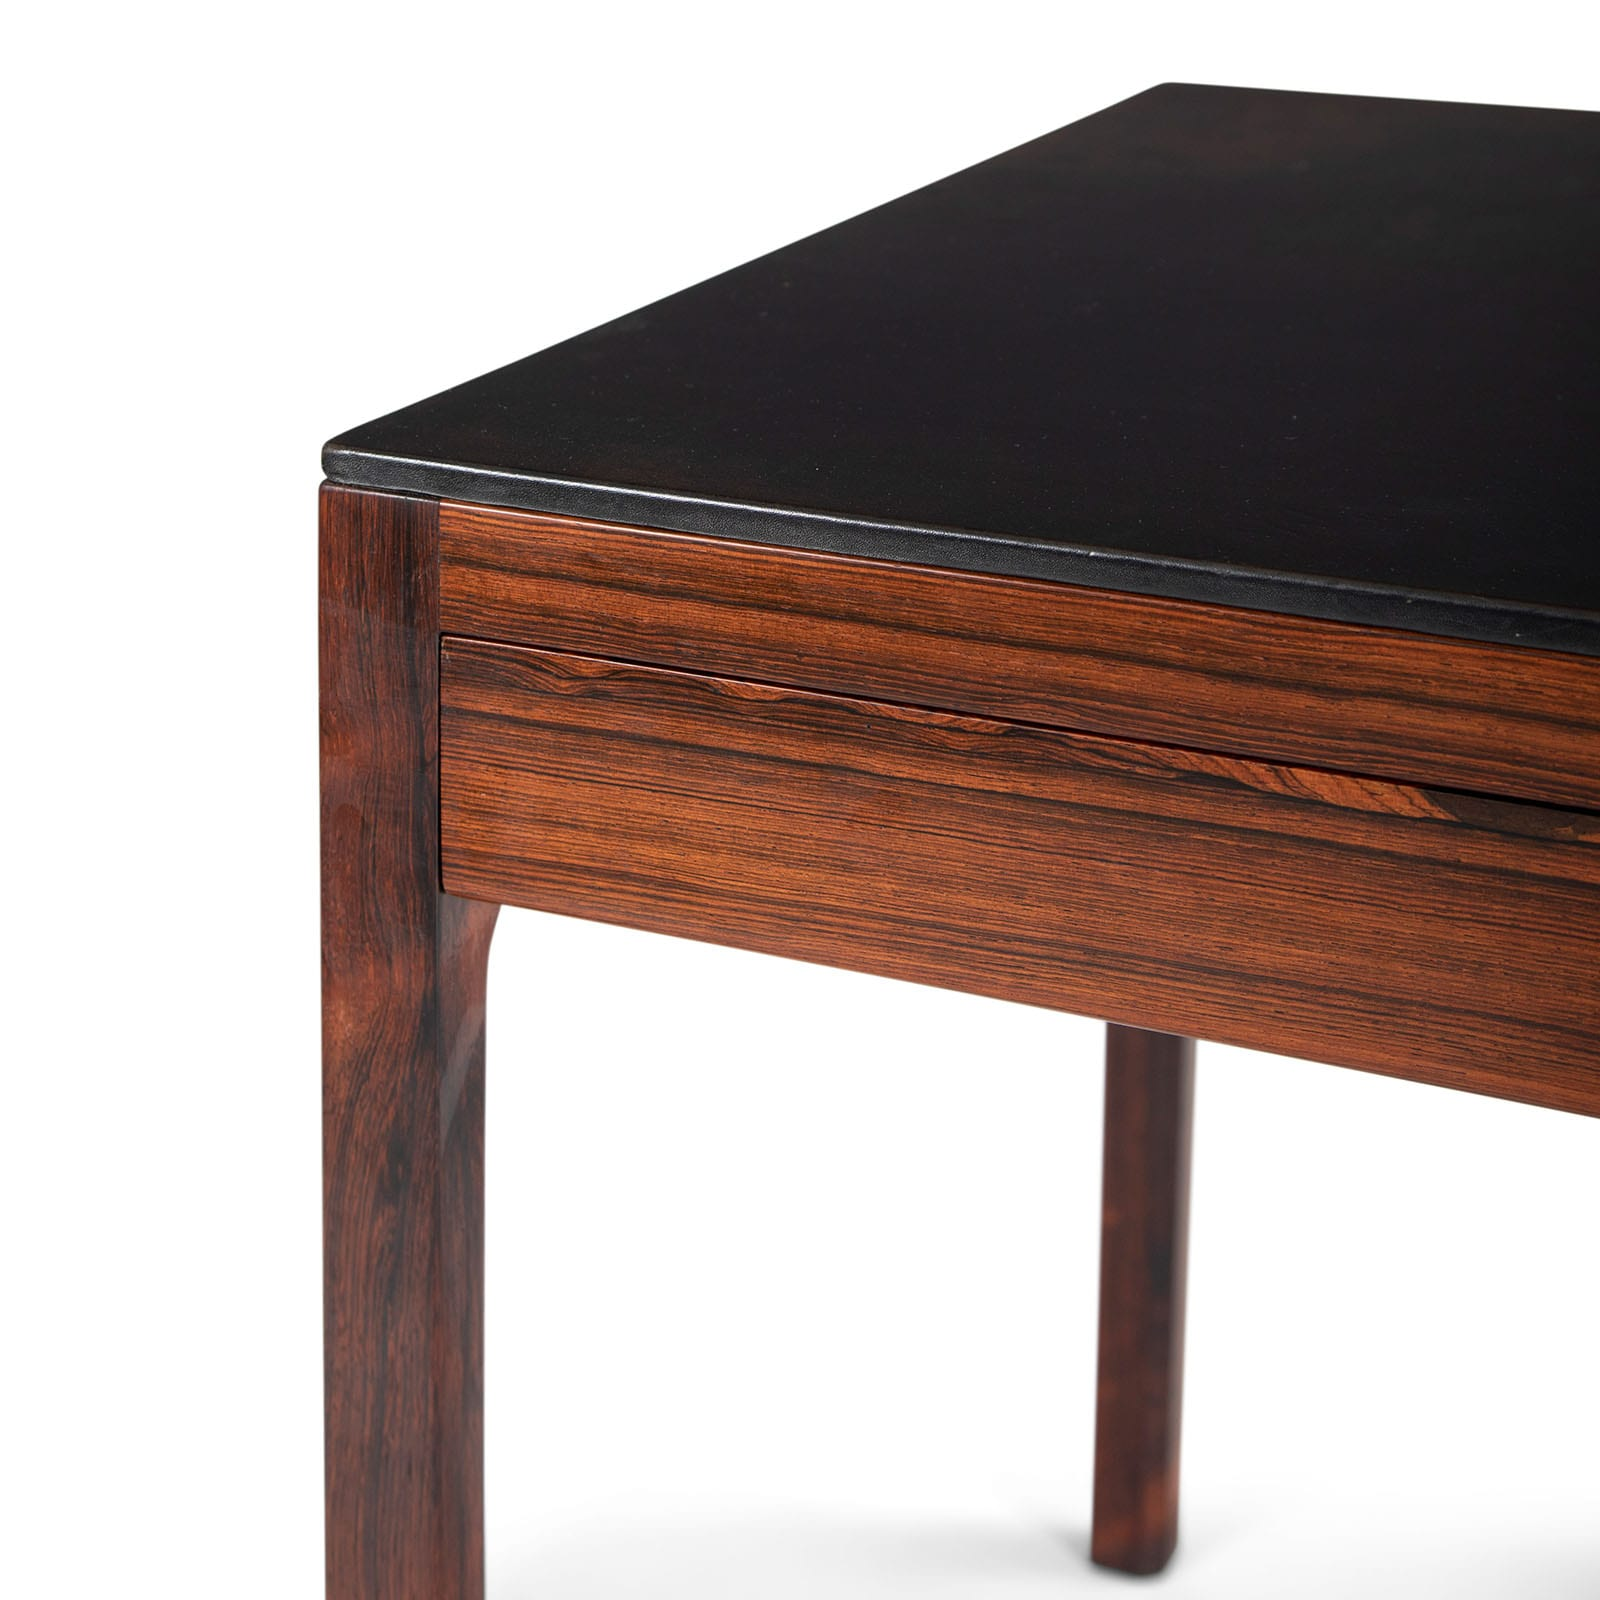 A desk with leather top